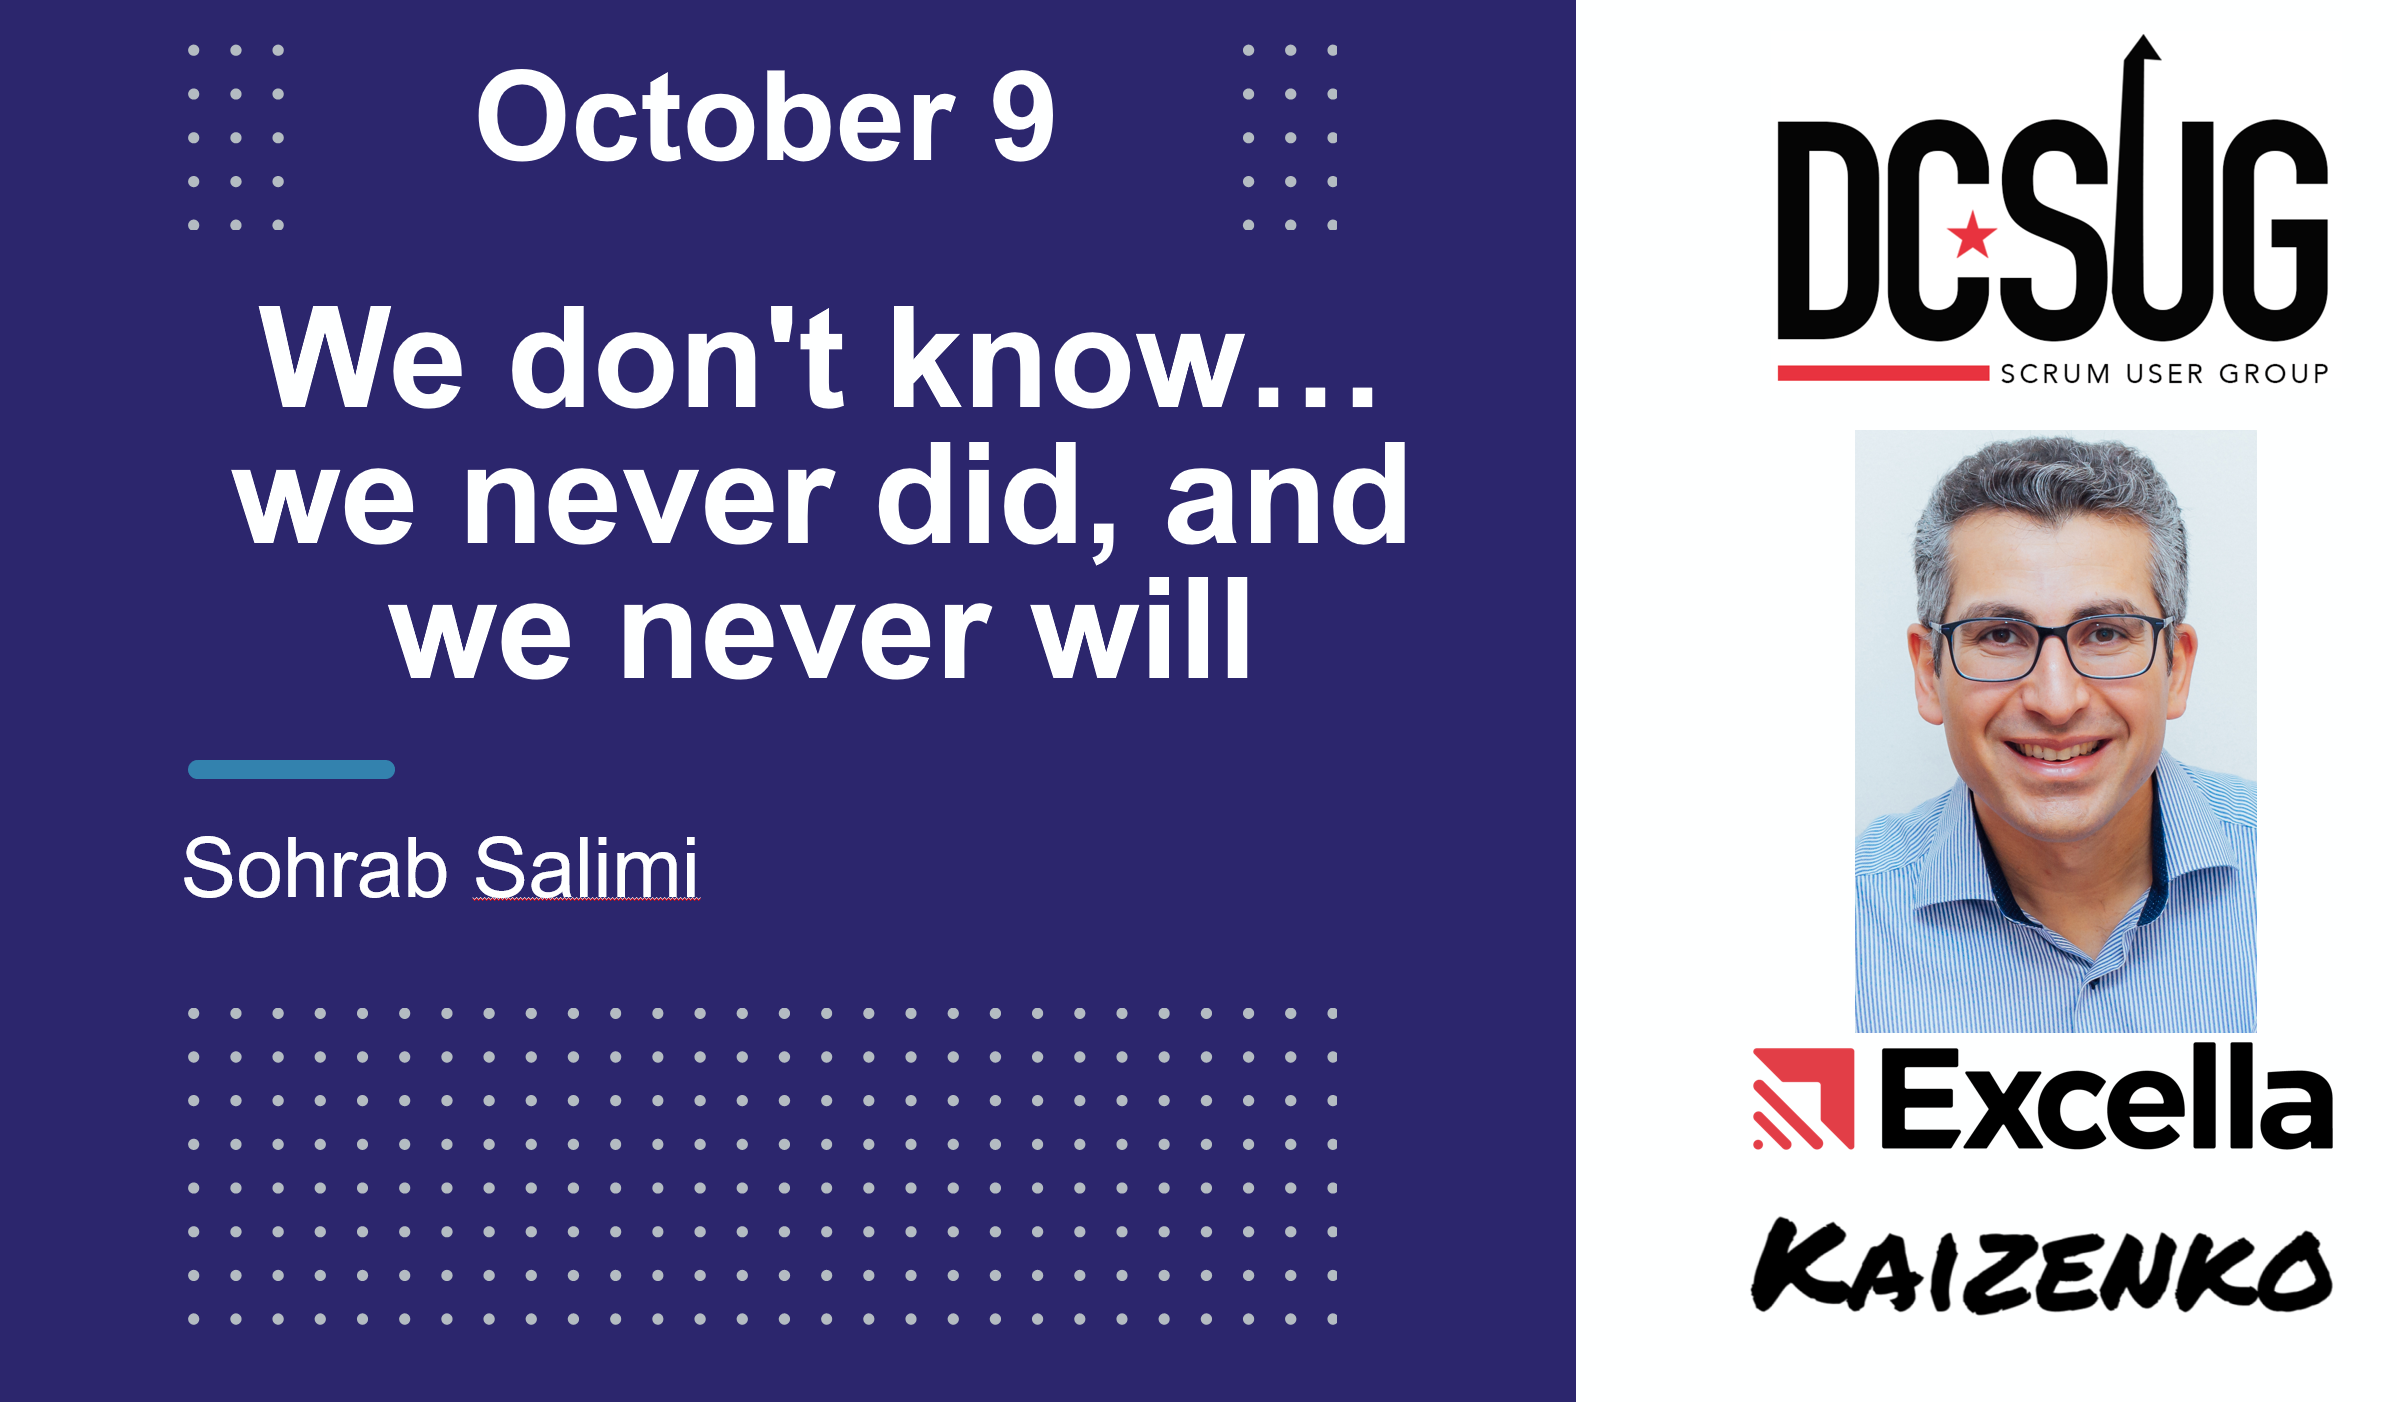 We Do Not Know, We Never Did, And We Never Will by Sohrab Salimi at the DC Scrum User Group (DCSUG)